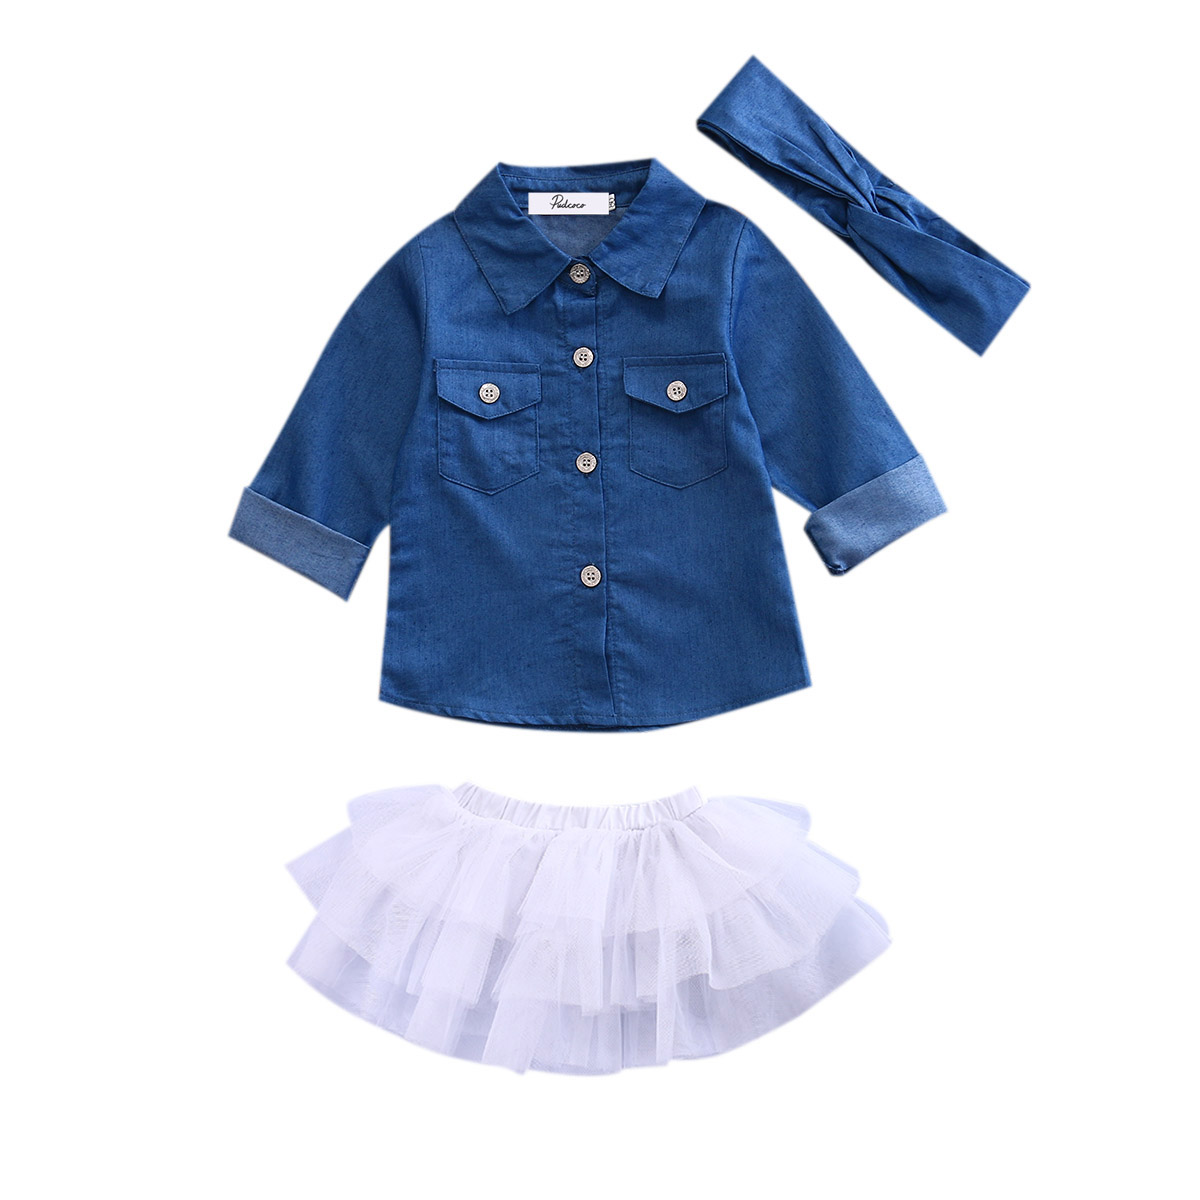 3PCS Toddler Kids Baby Girl Clothes Set Denim Tops T-shirt +Tutu Skirt Headband Outfits Summer Cowboy Suit Children Set 0-5Y 3pcs outfit infantil girls clothes toddler baby girl plaid ruffled tops kids girls denim shorts cute headband summer outfits set